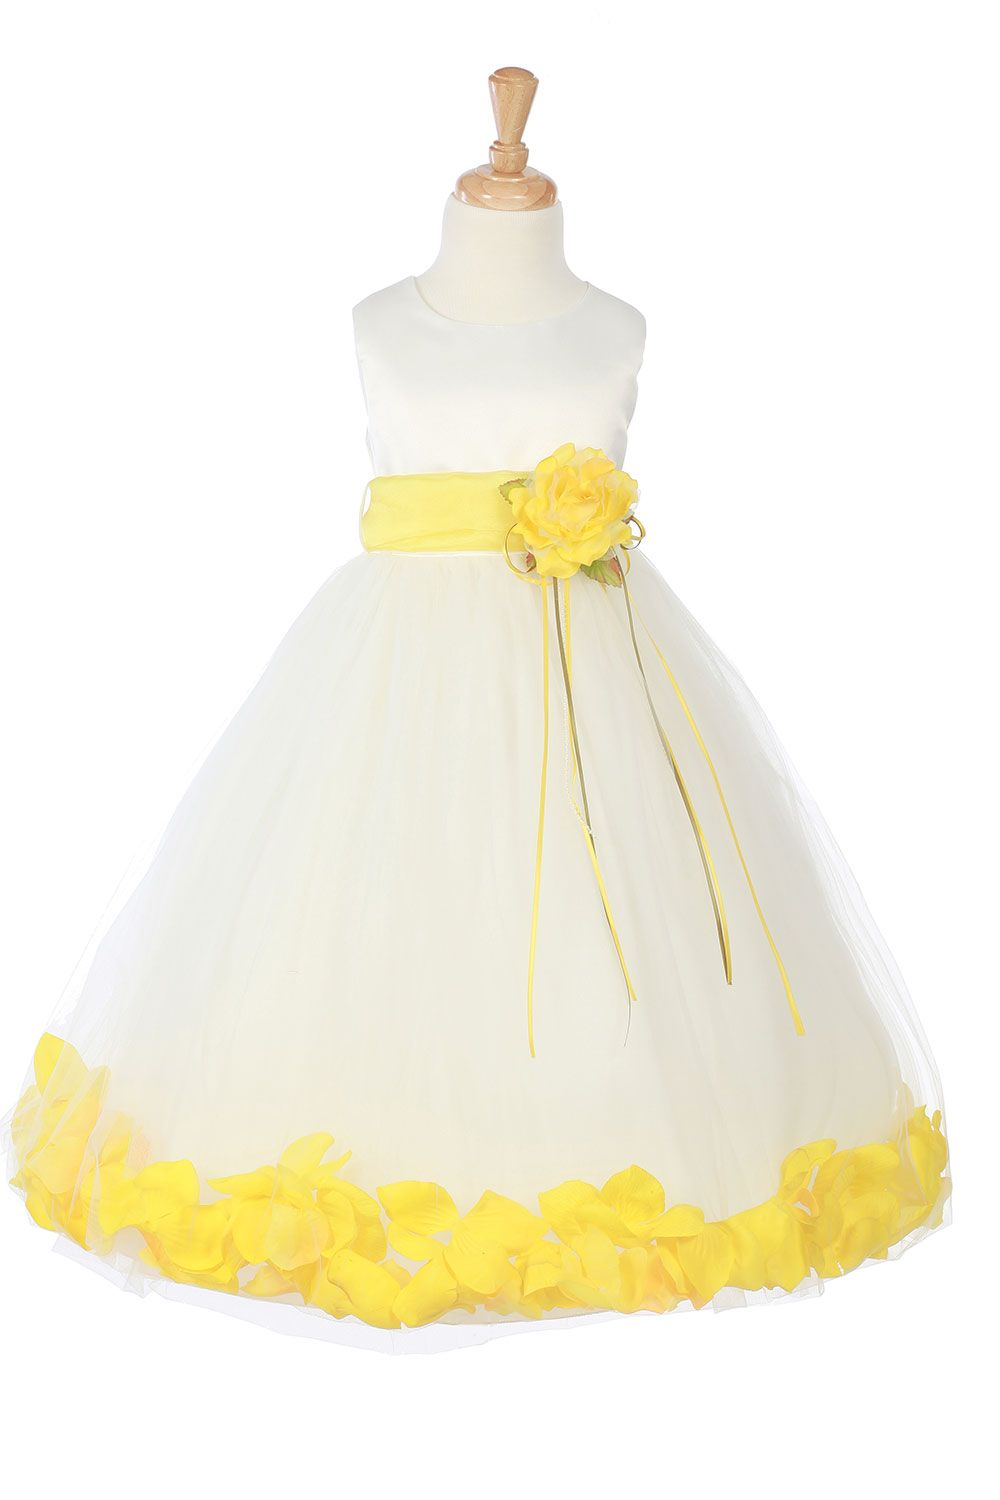 21f898a25650 Ivory/Yellow Sleeveless Satin Flower Petal Flower Girl Dress with ...